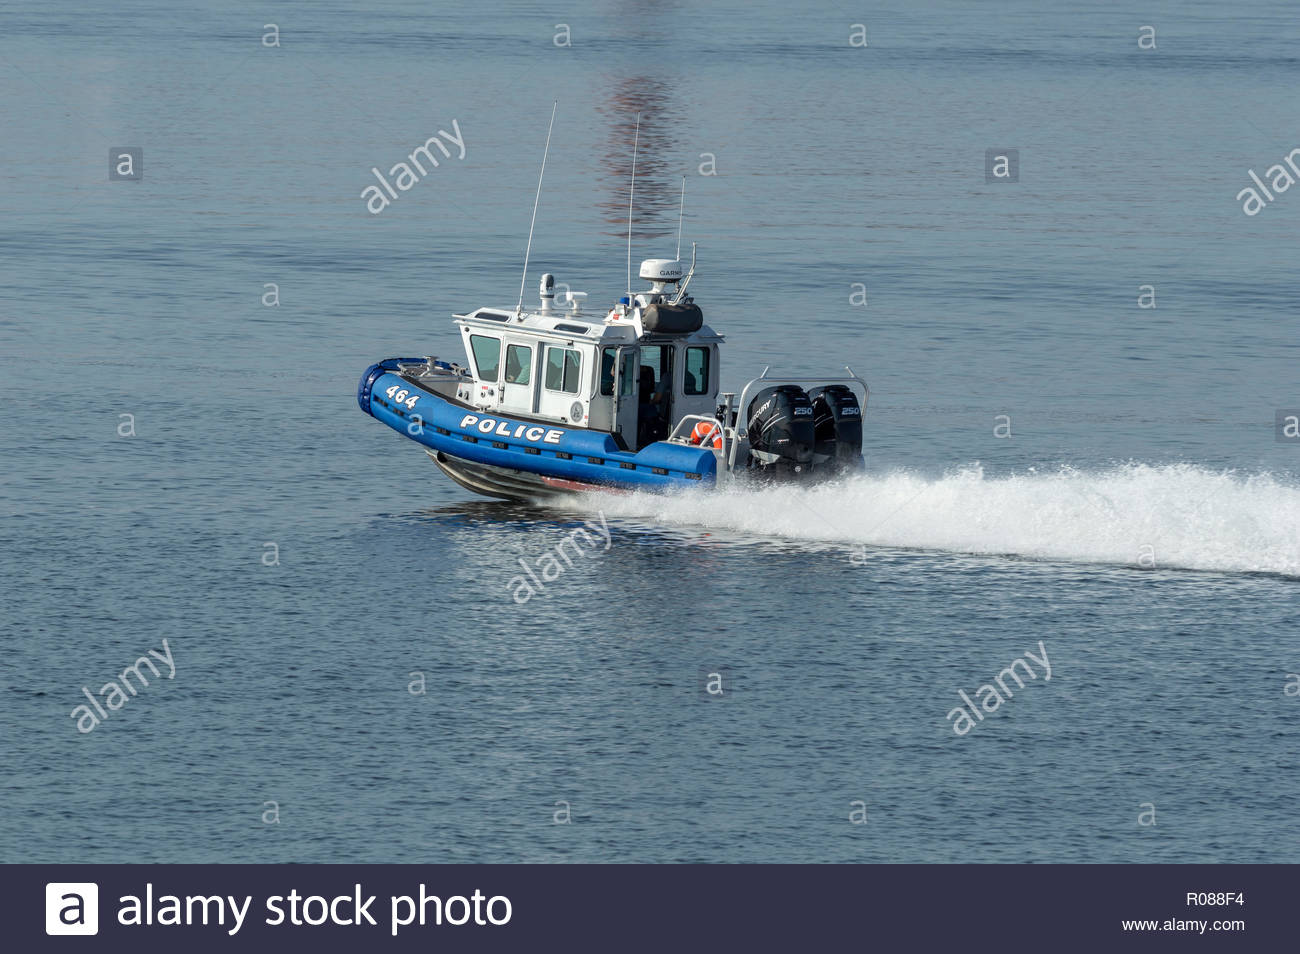 New Bedford, Massachusetts, USA - August 17, 2018: Twin 250-horsepower outboards driving Fairhaven Police Department patrol boat toward Buzzards Bay - Stock Image